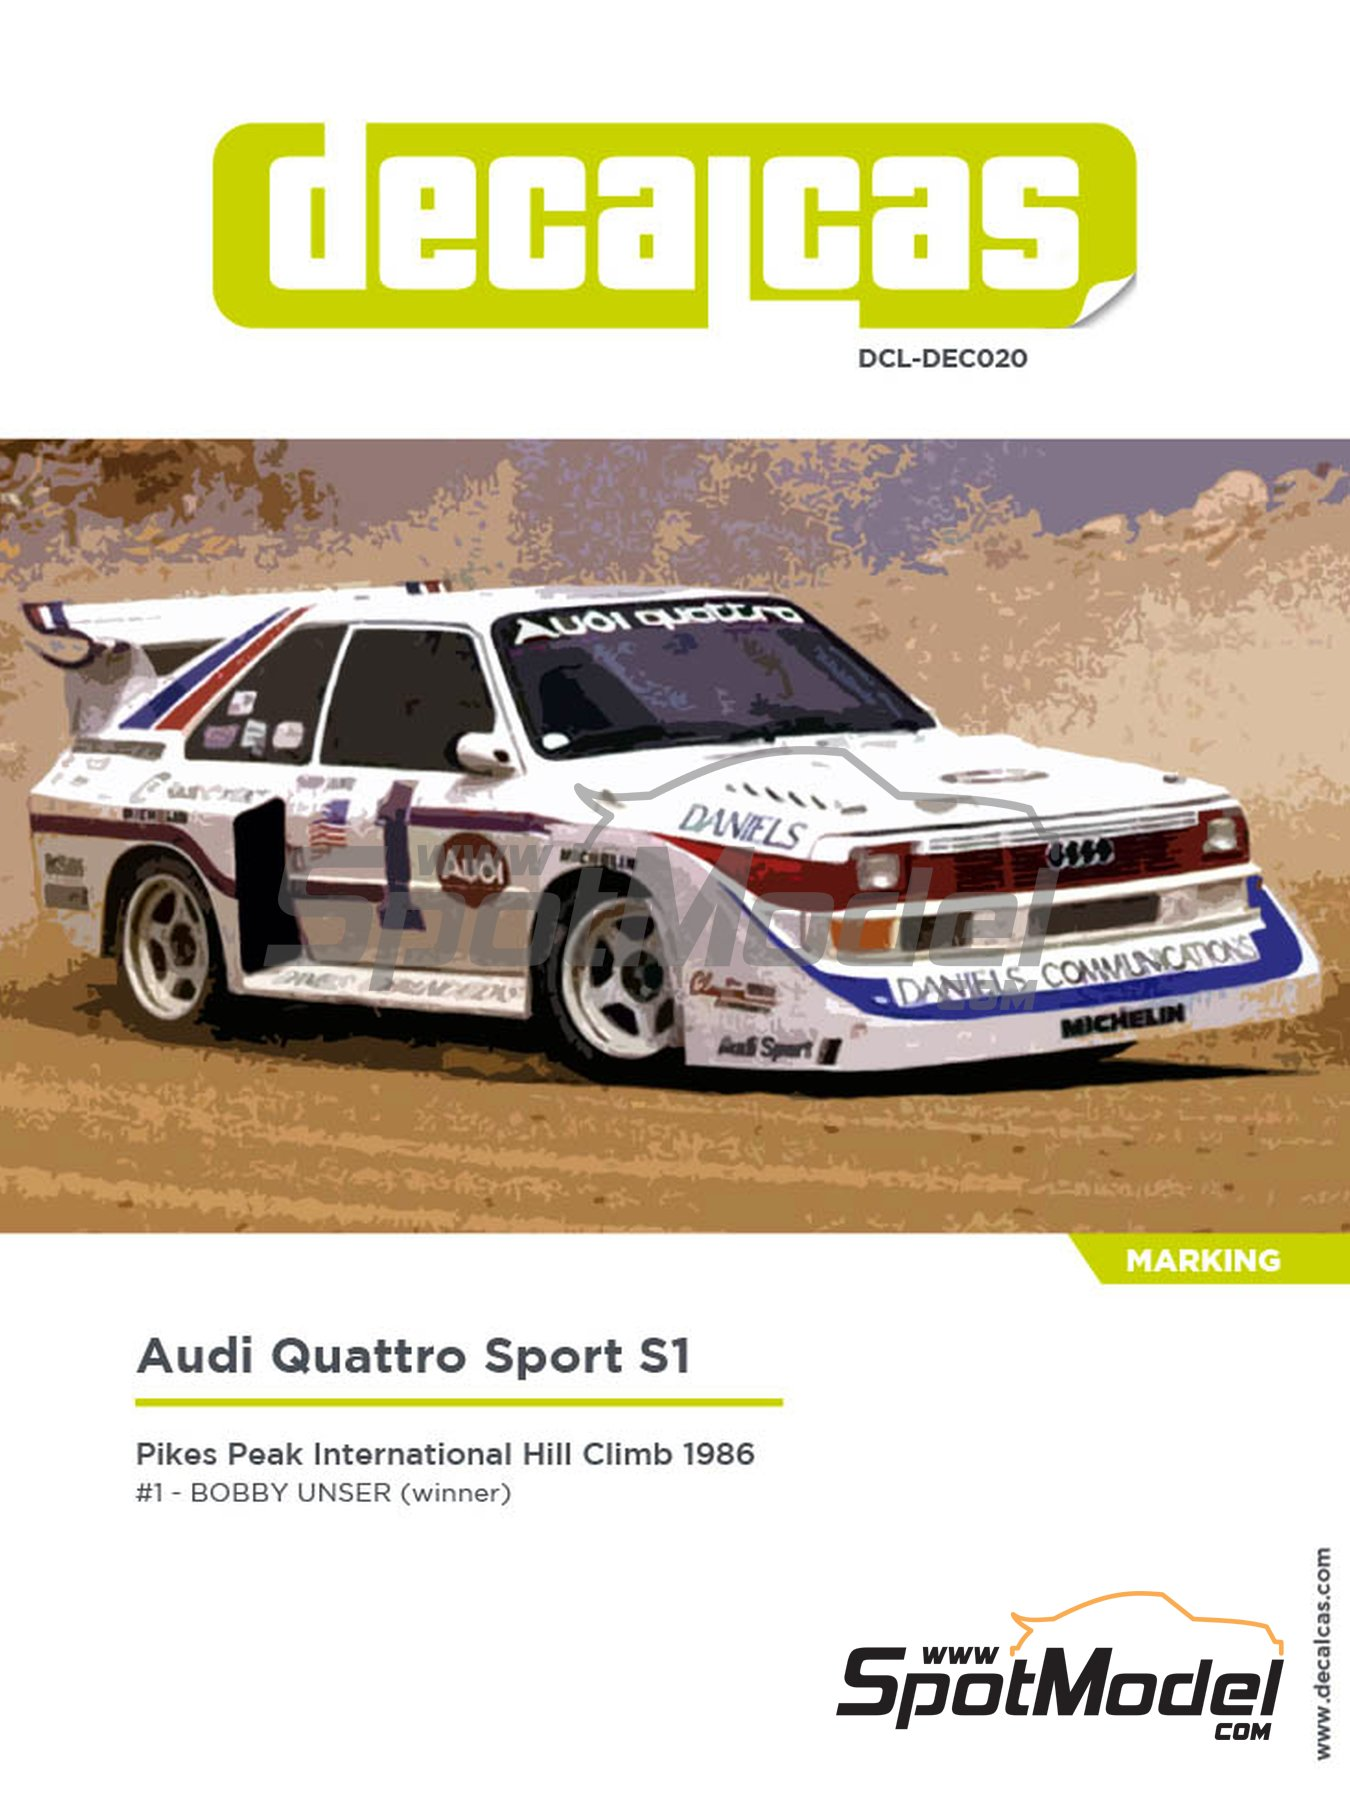 Audi Quattro Sport S1 - Pikes Peak Climb Hill Race 1986 | Marking / livery in 1/24 scale manufactured by Decalcas (ref.DCL-DEC020) image